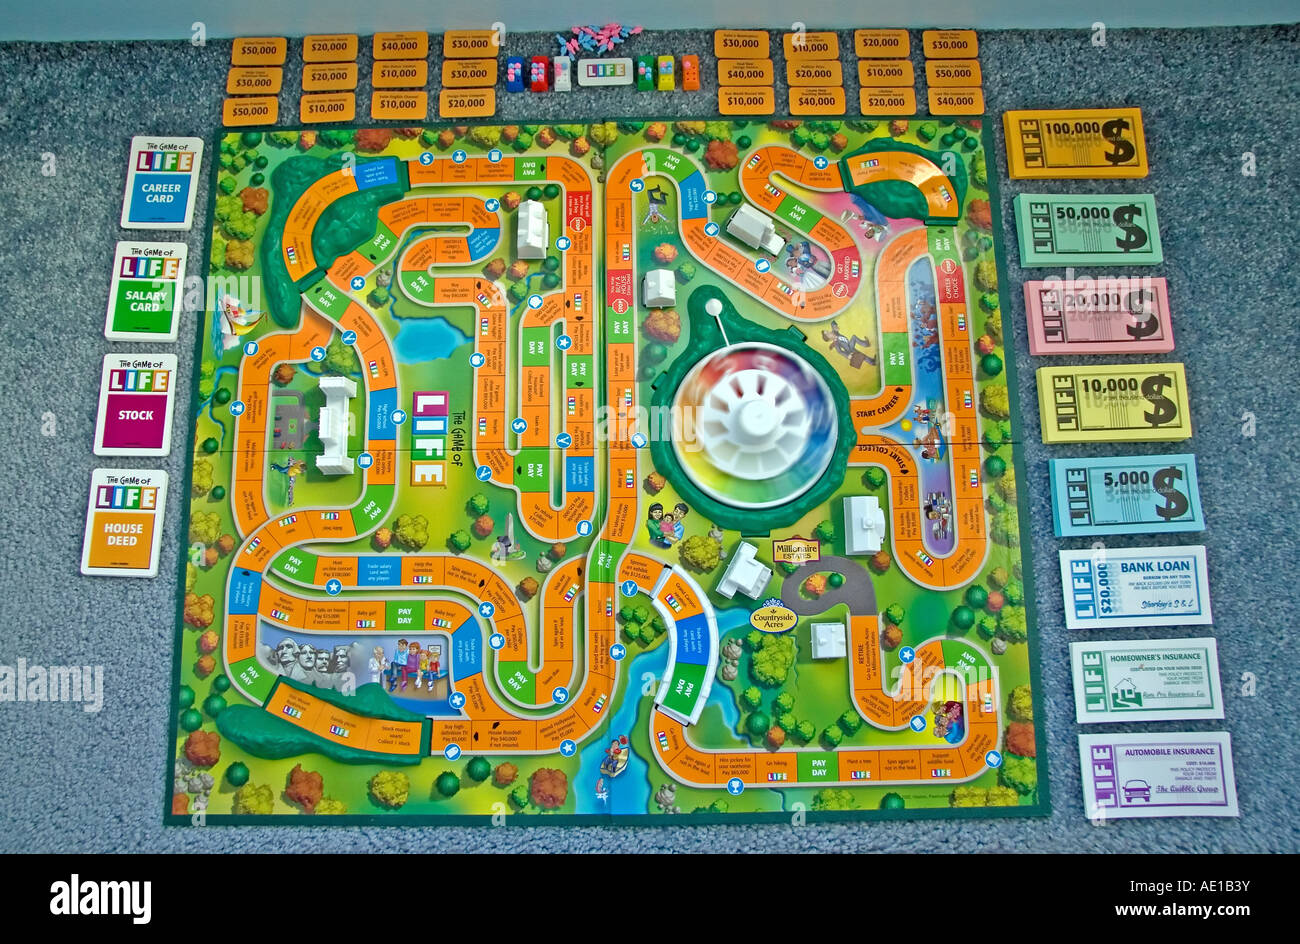 how to play life game board